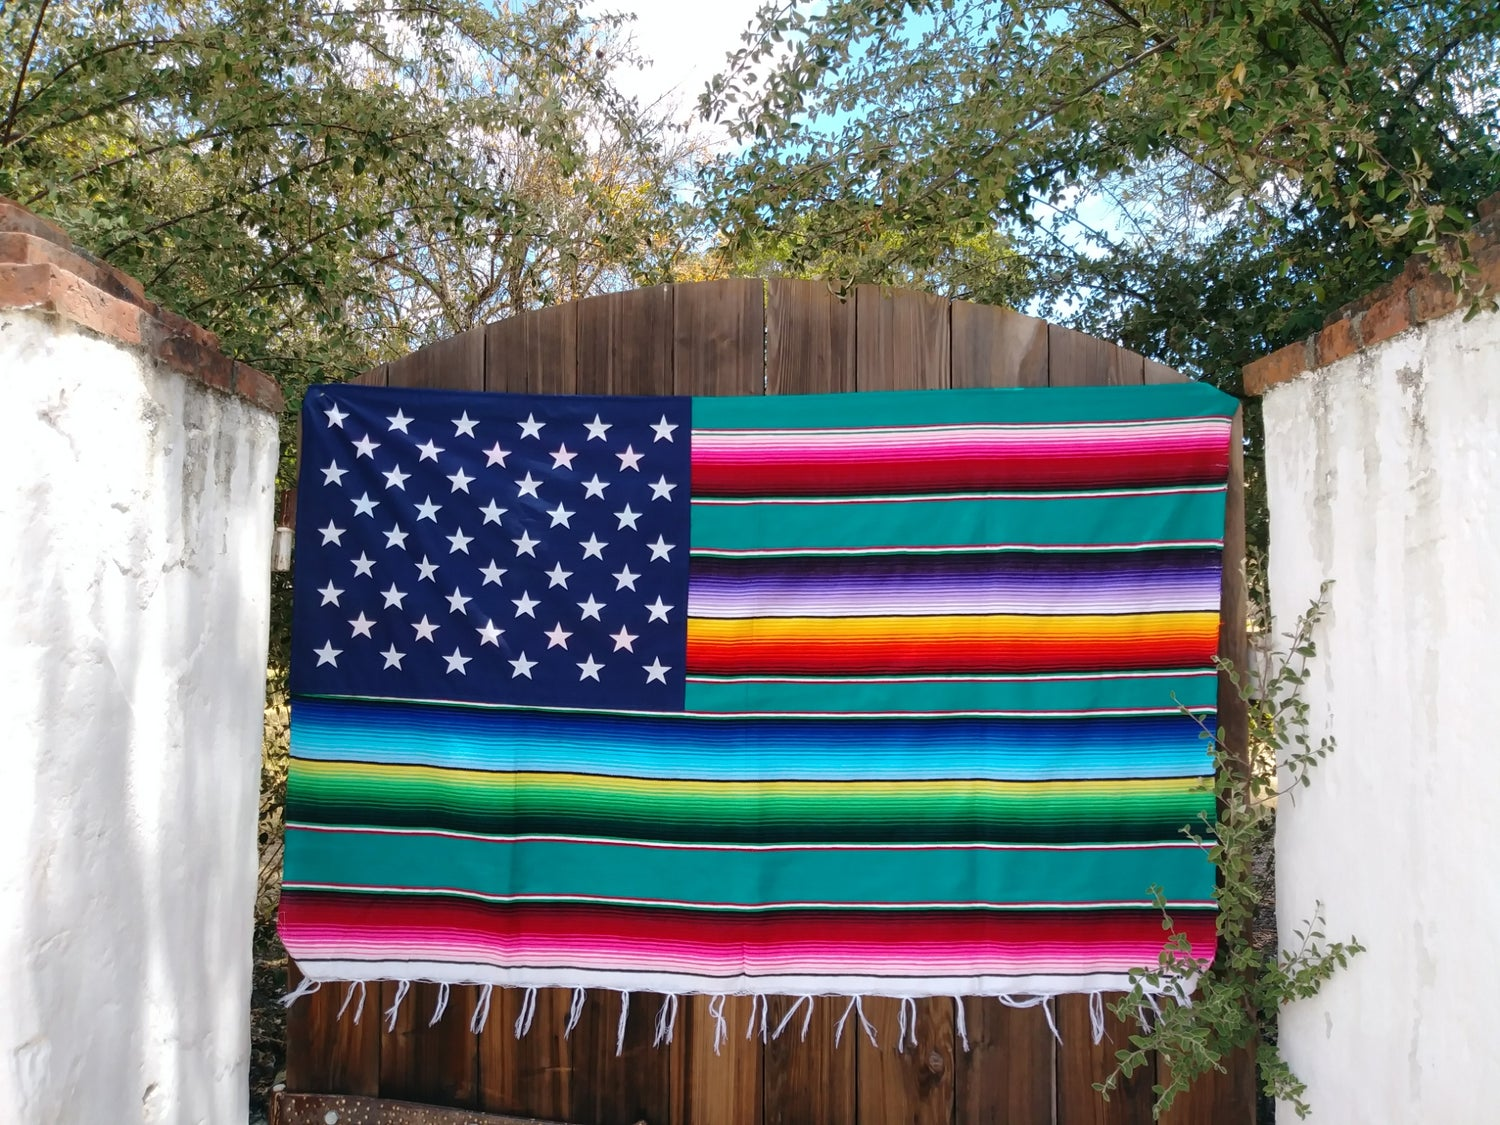 Image of 50 Star Serape Flag (Teal) PRE-ORDER PLEASE READ DESCRIPTION